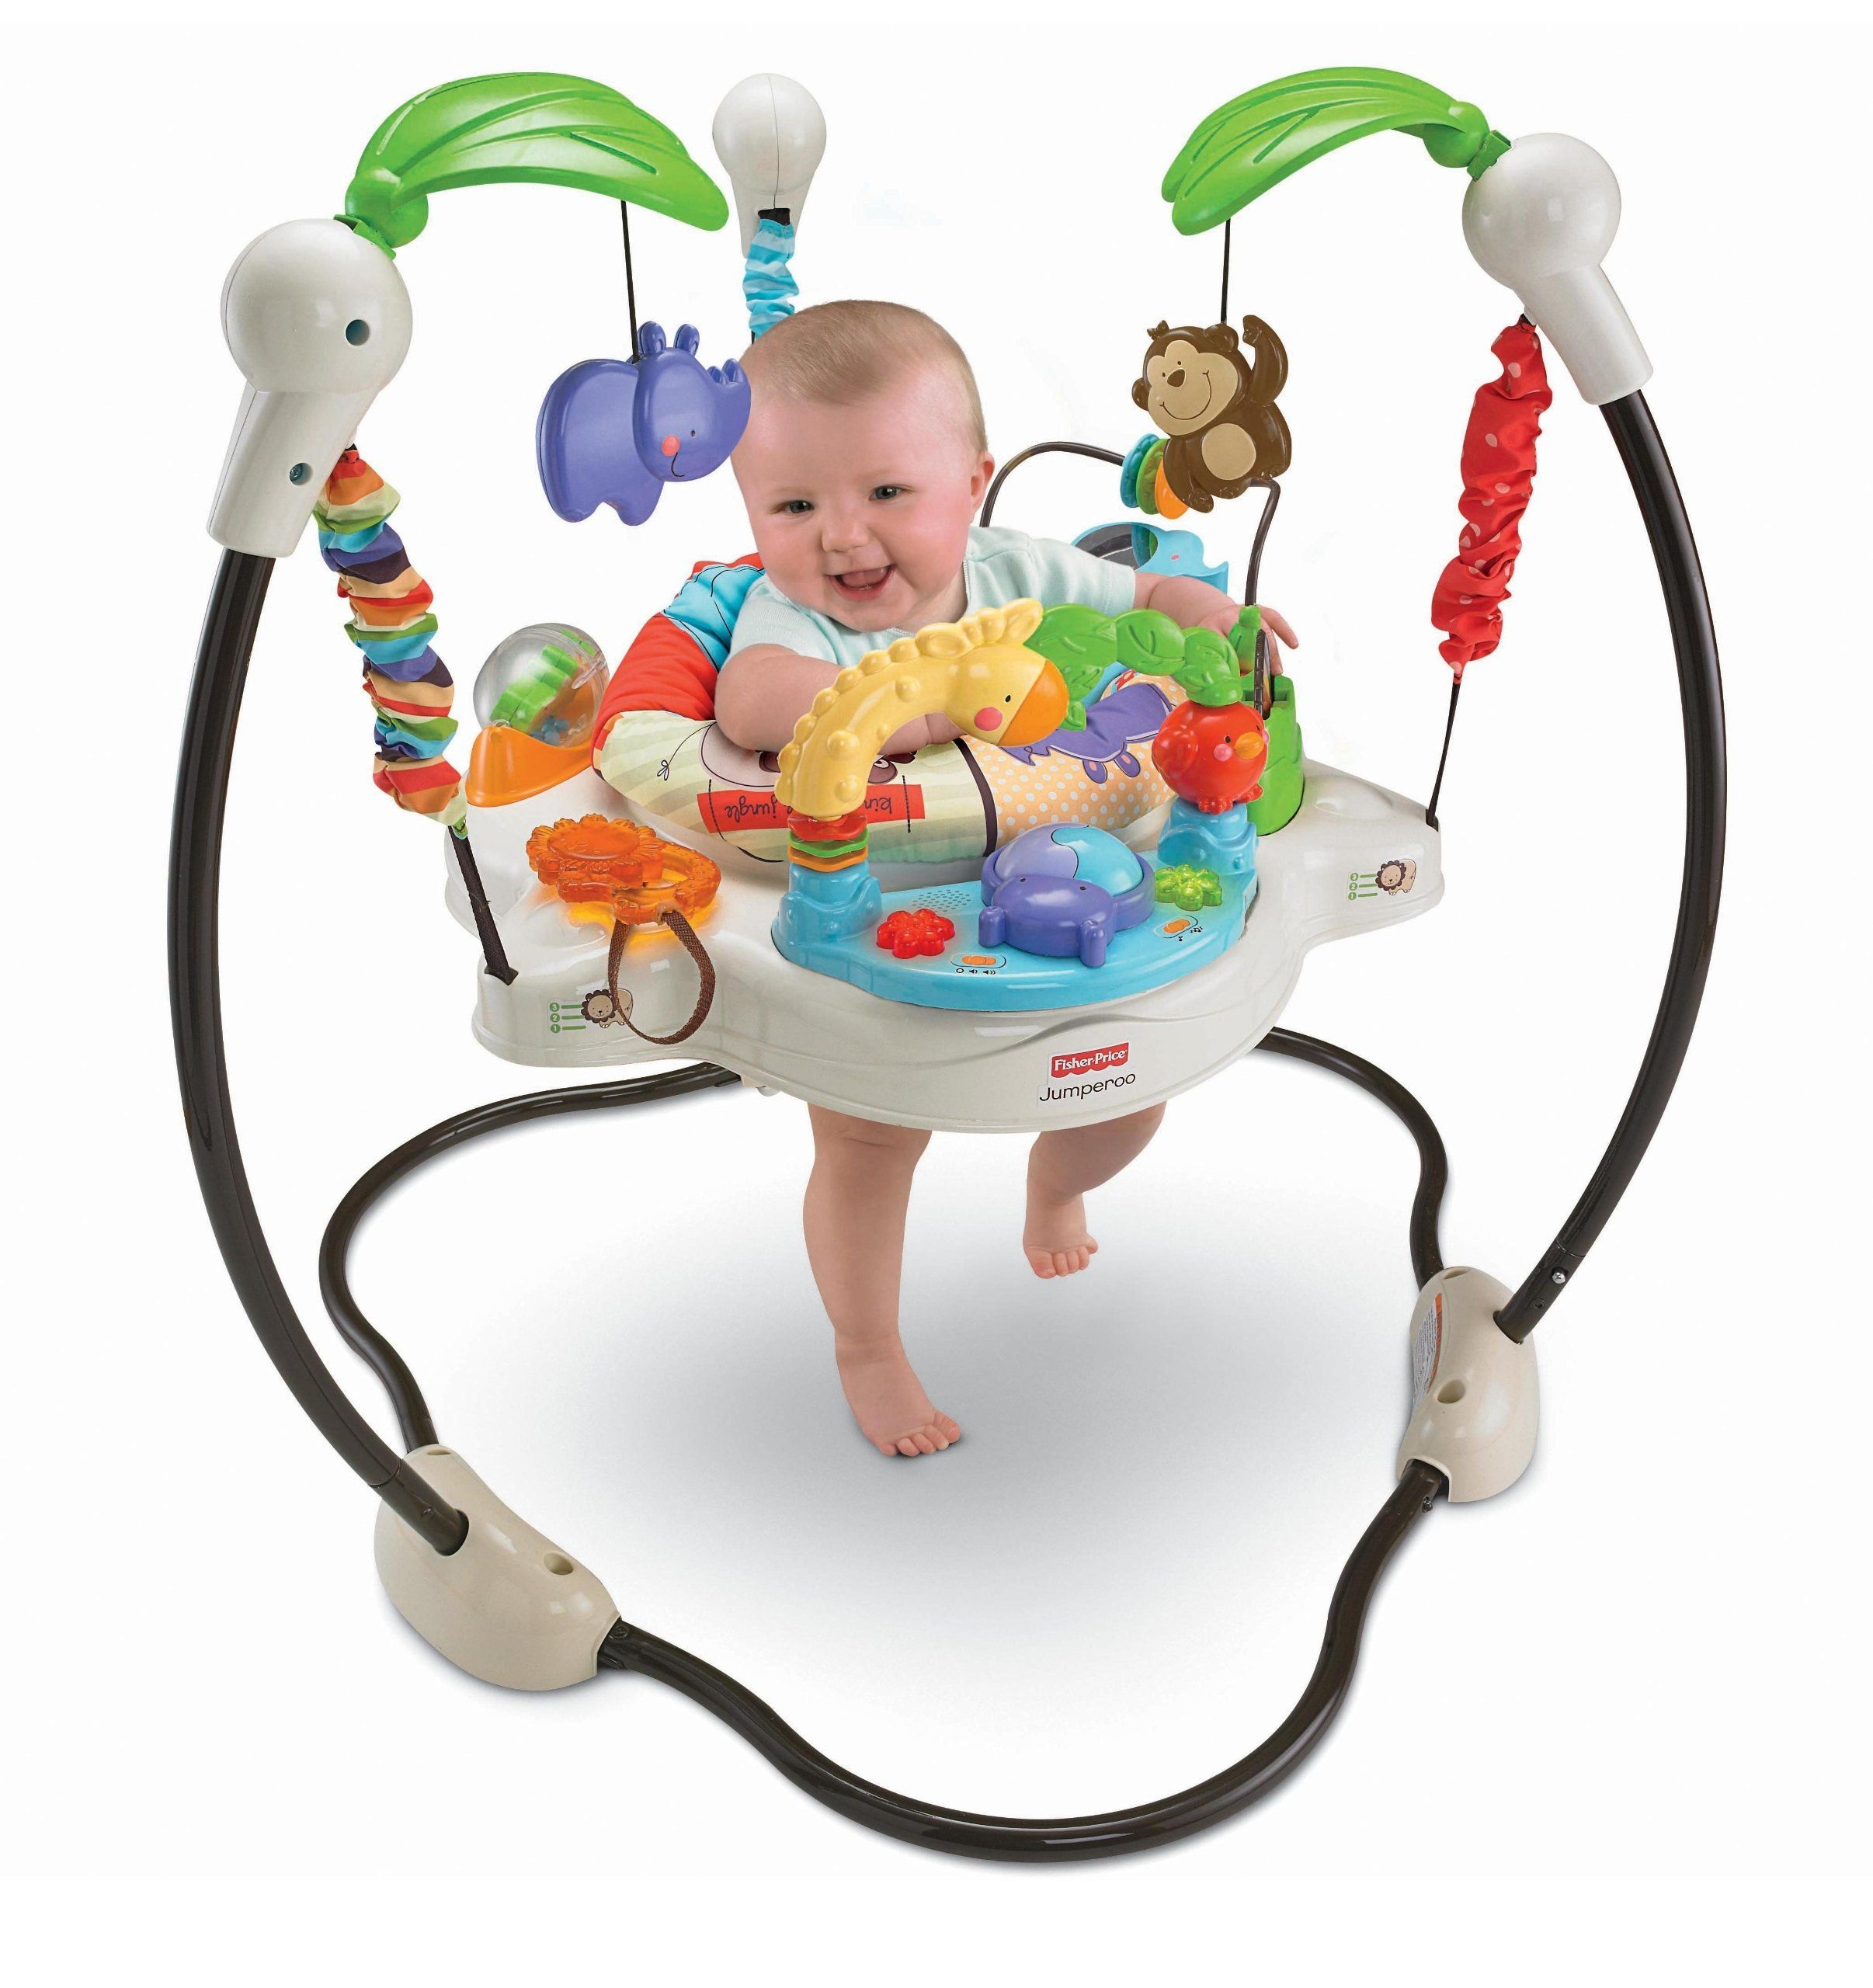 cd4fe5149 Amazon.com   Fisher-Price Luv U Zoo Jumperoo   Stationary Stand Up ...